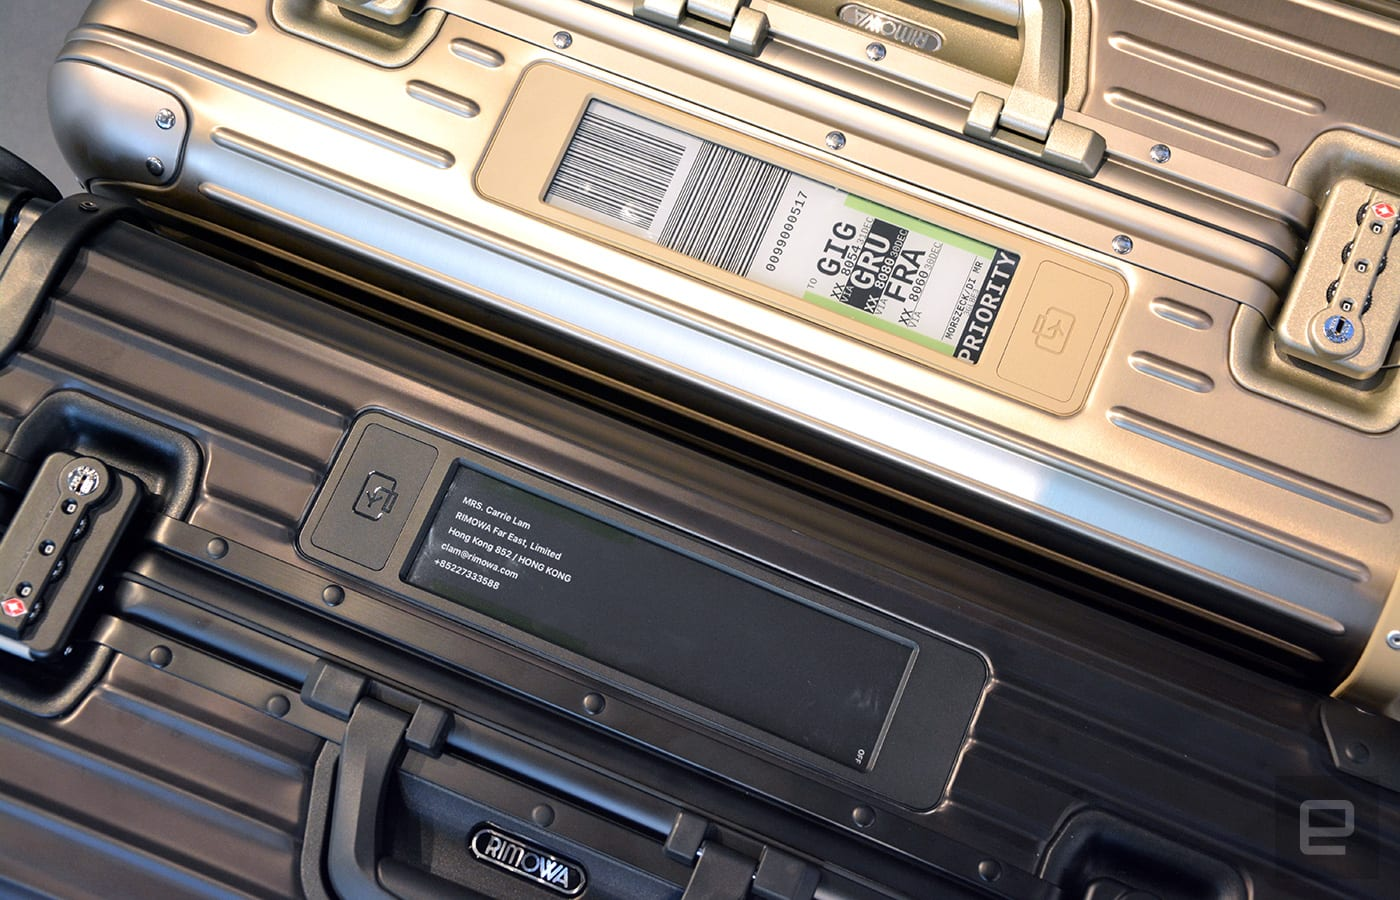 04021b29be55 Rimowa's electronic luggage tag is the future of traveling